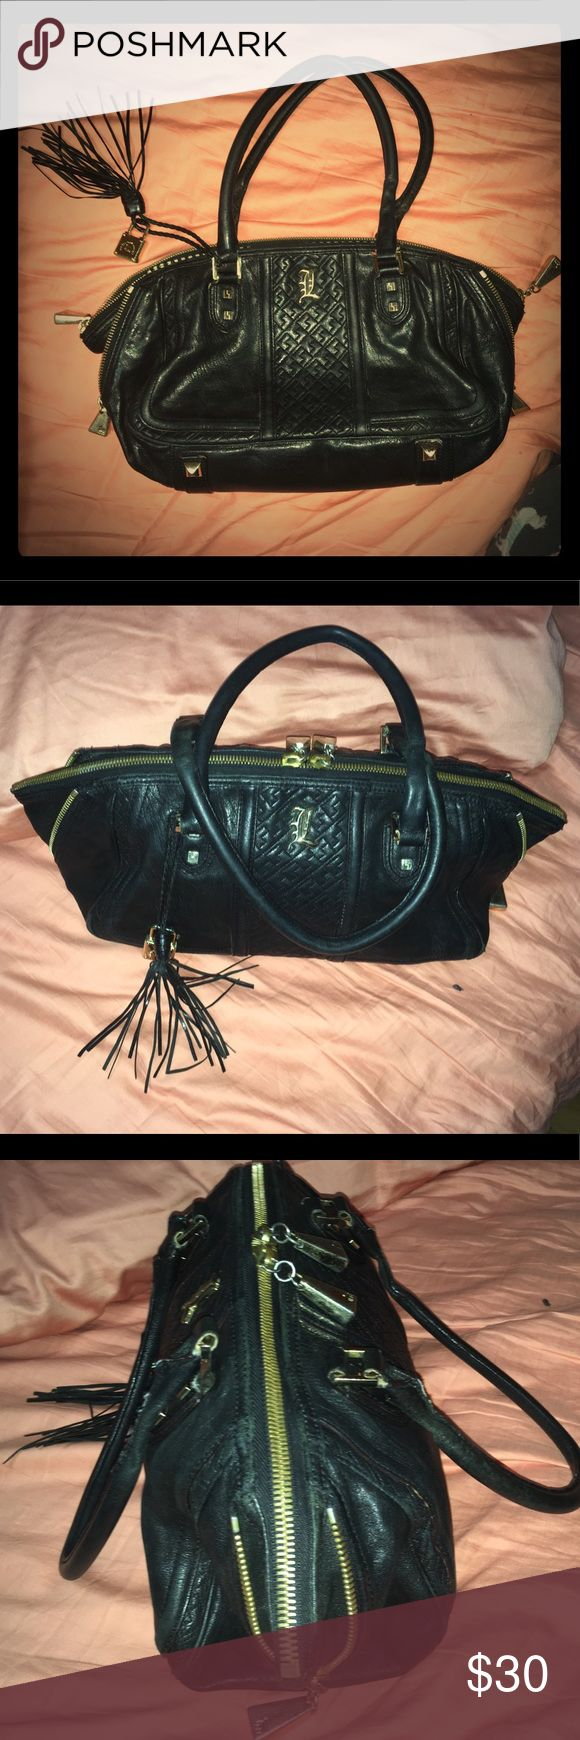 LAMB Black Leather Shoulder Handbag w Double Strap LAMB Black Leather Shoulder Handbag w Double Straps. Bag has gold decorated hardware. Gently used but kept in good condition w Leather protection oil applied. LAMB Bags Shoulder Bags